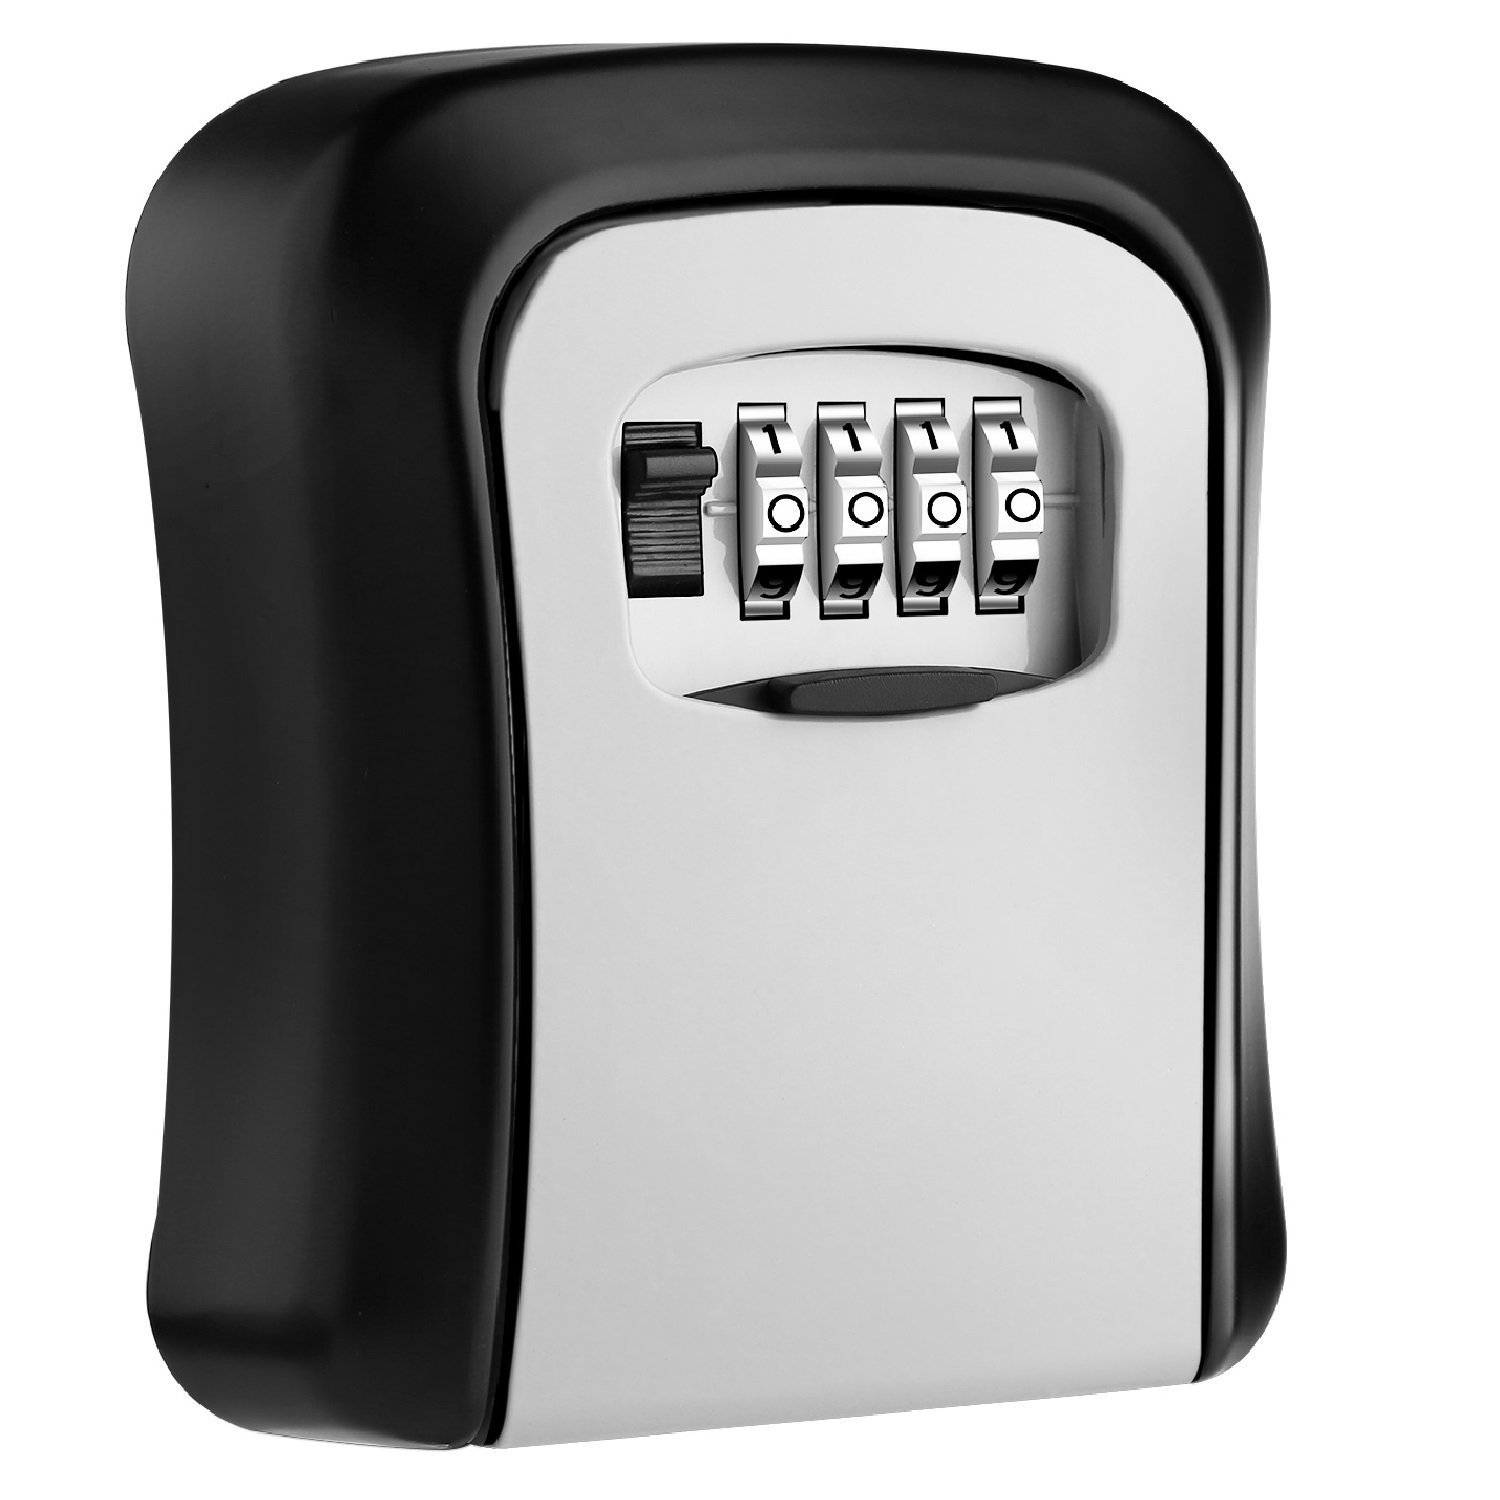 Key Lock Box Wall-Mounted, Key Safe Box Weatherproof 4 Digit Combination Key Storage Lock Box Indoor Outdoor for Work Vacation.